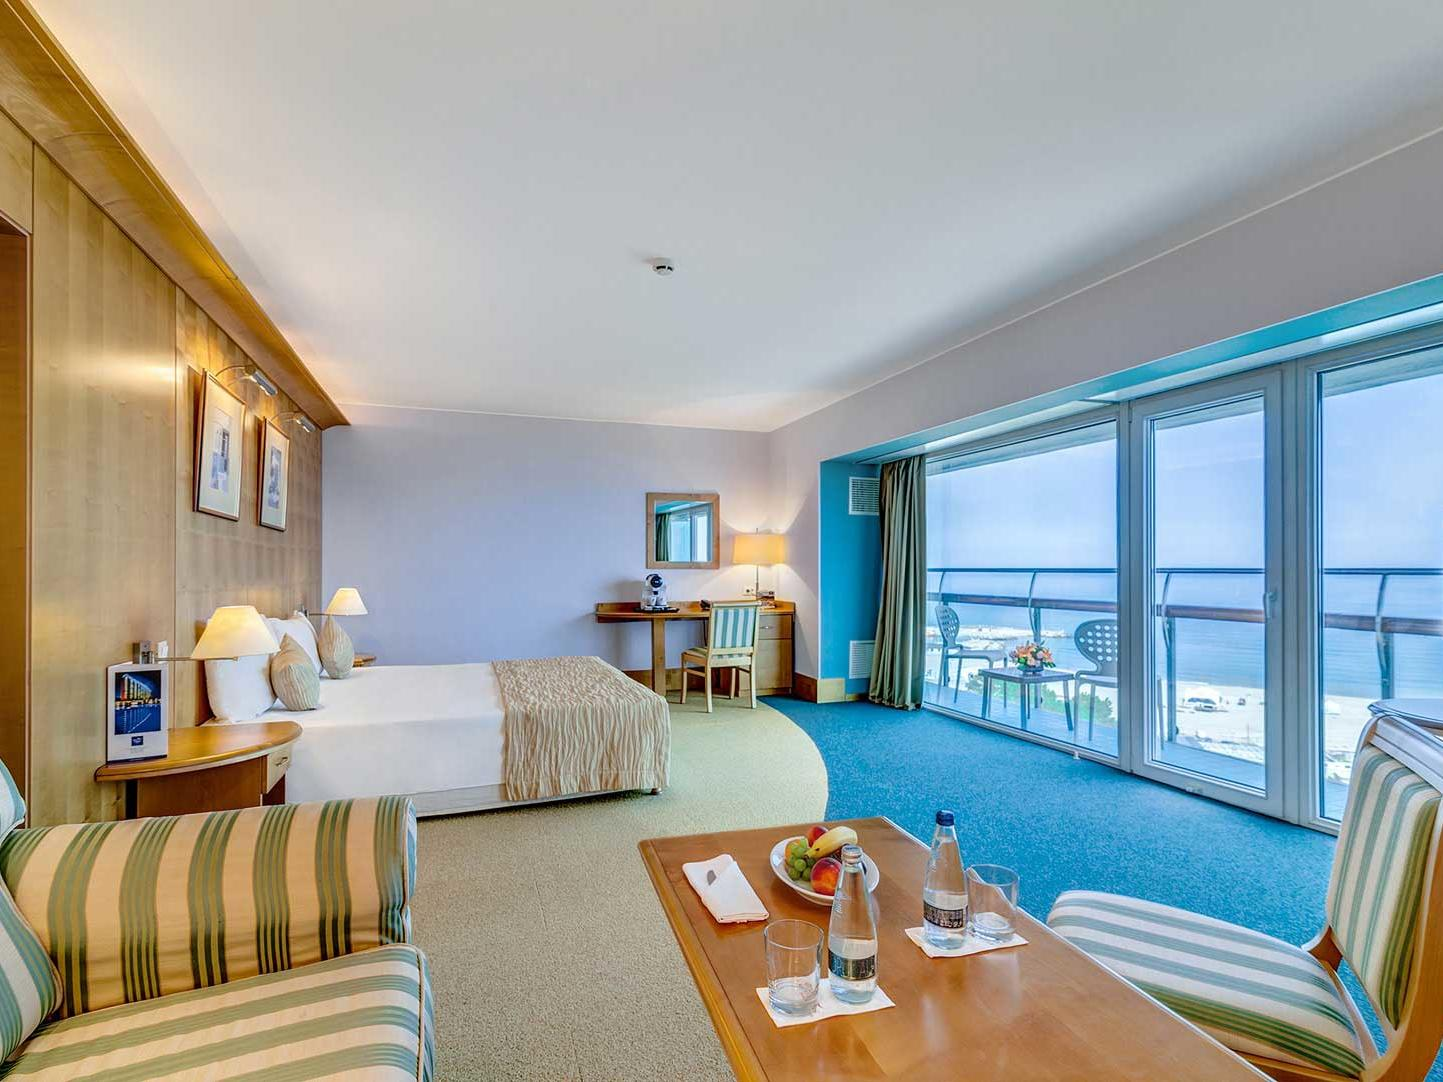 King Deluxe Room at Ana Hotels Europa Eforie Nord